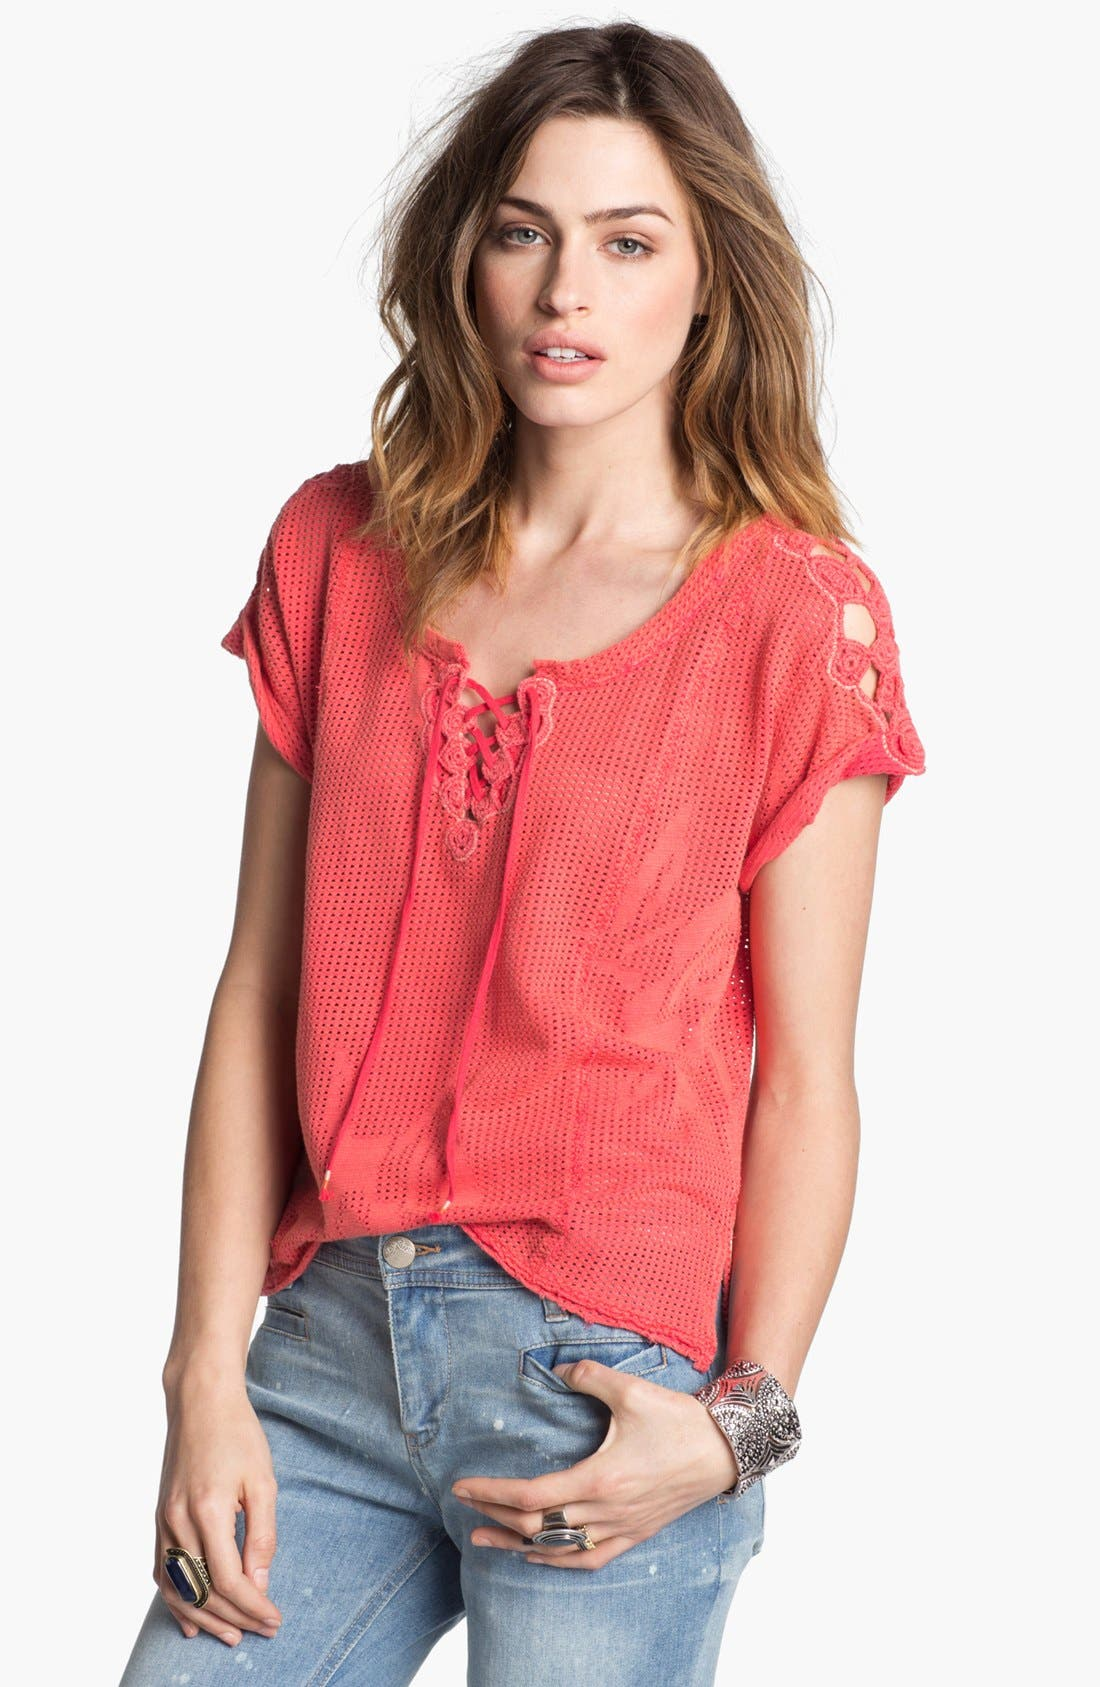 Alternate Image 1 Selected - Free People 'Strawberry Fields' Lace Neck Mesh Top